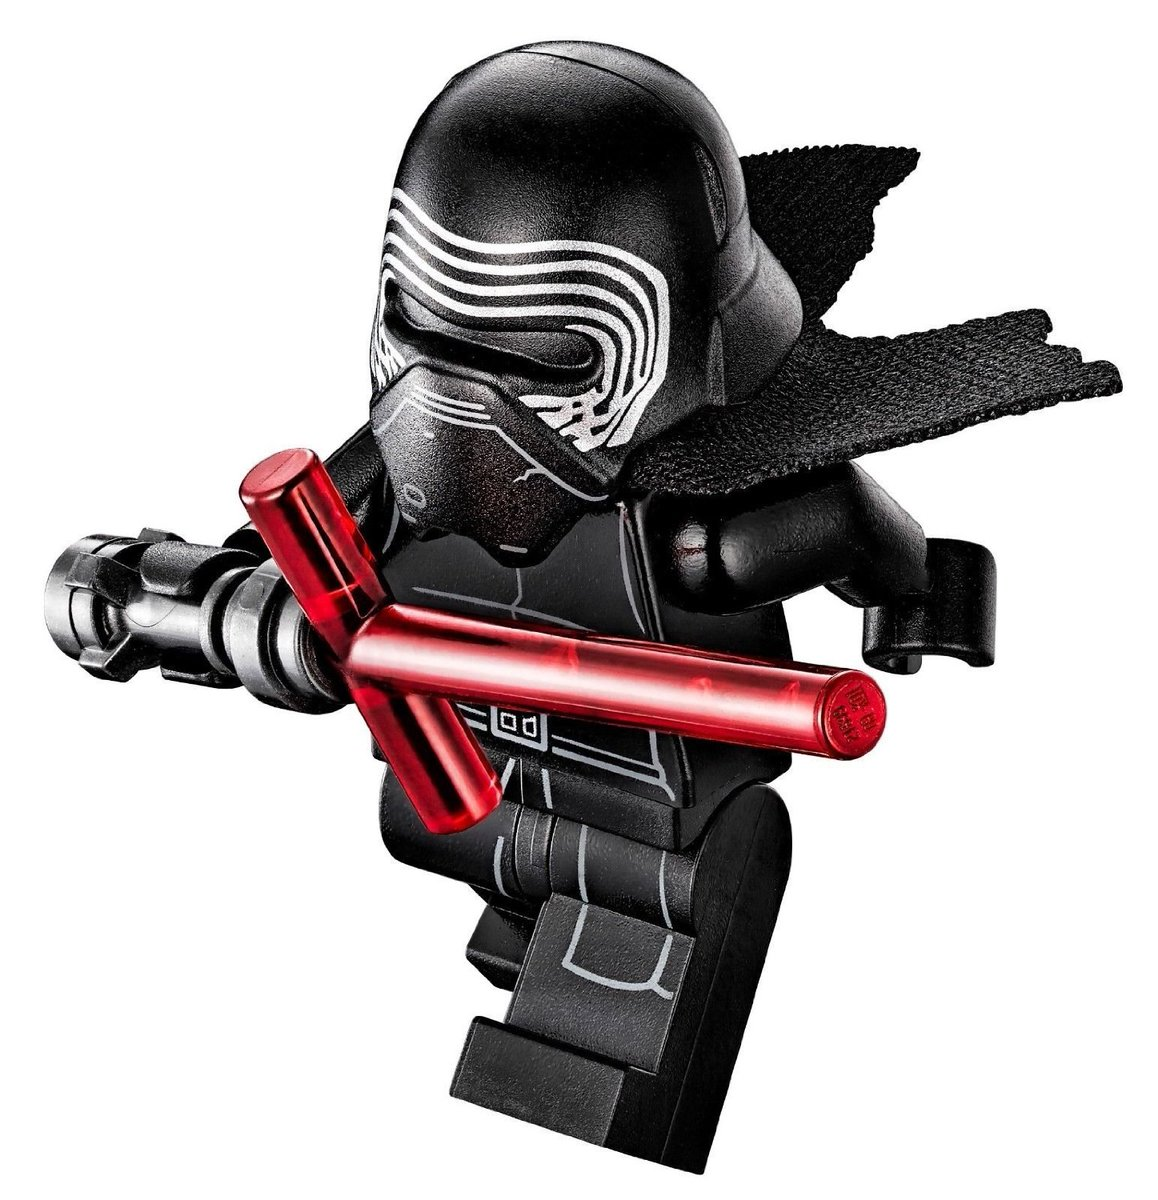 LEGO Star Wars - Kylo Ren minifigure with light saber https://t.co/ATy...